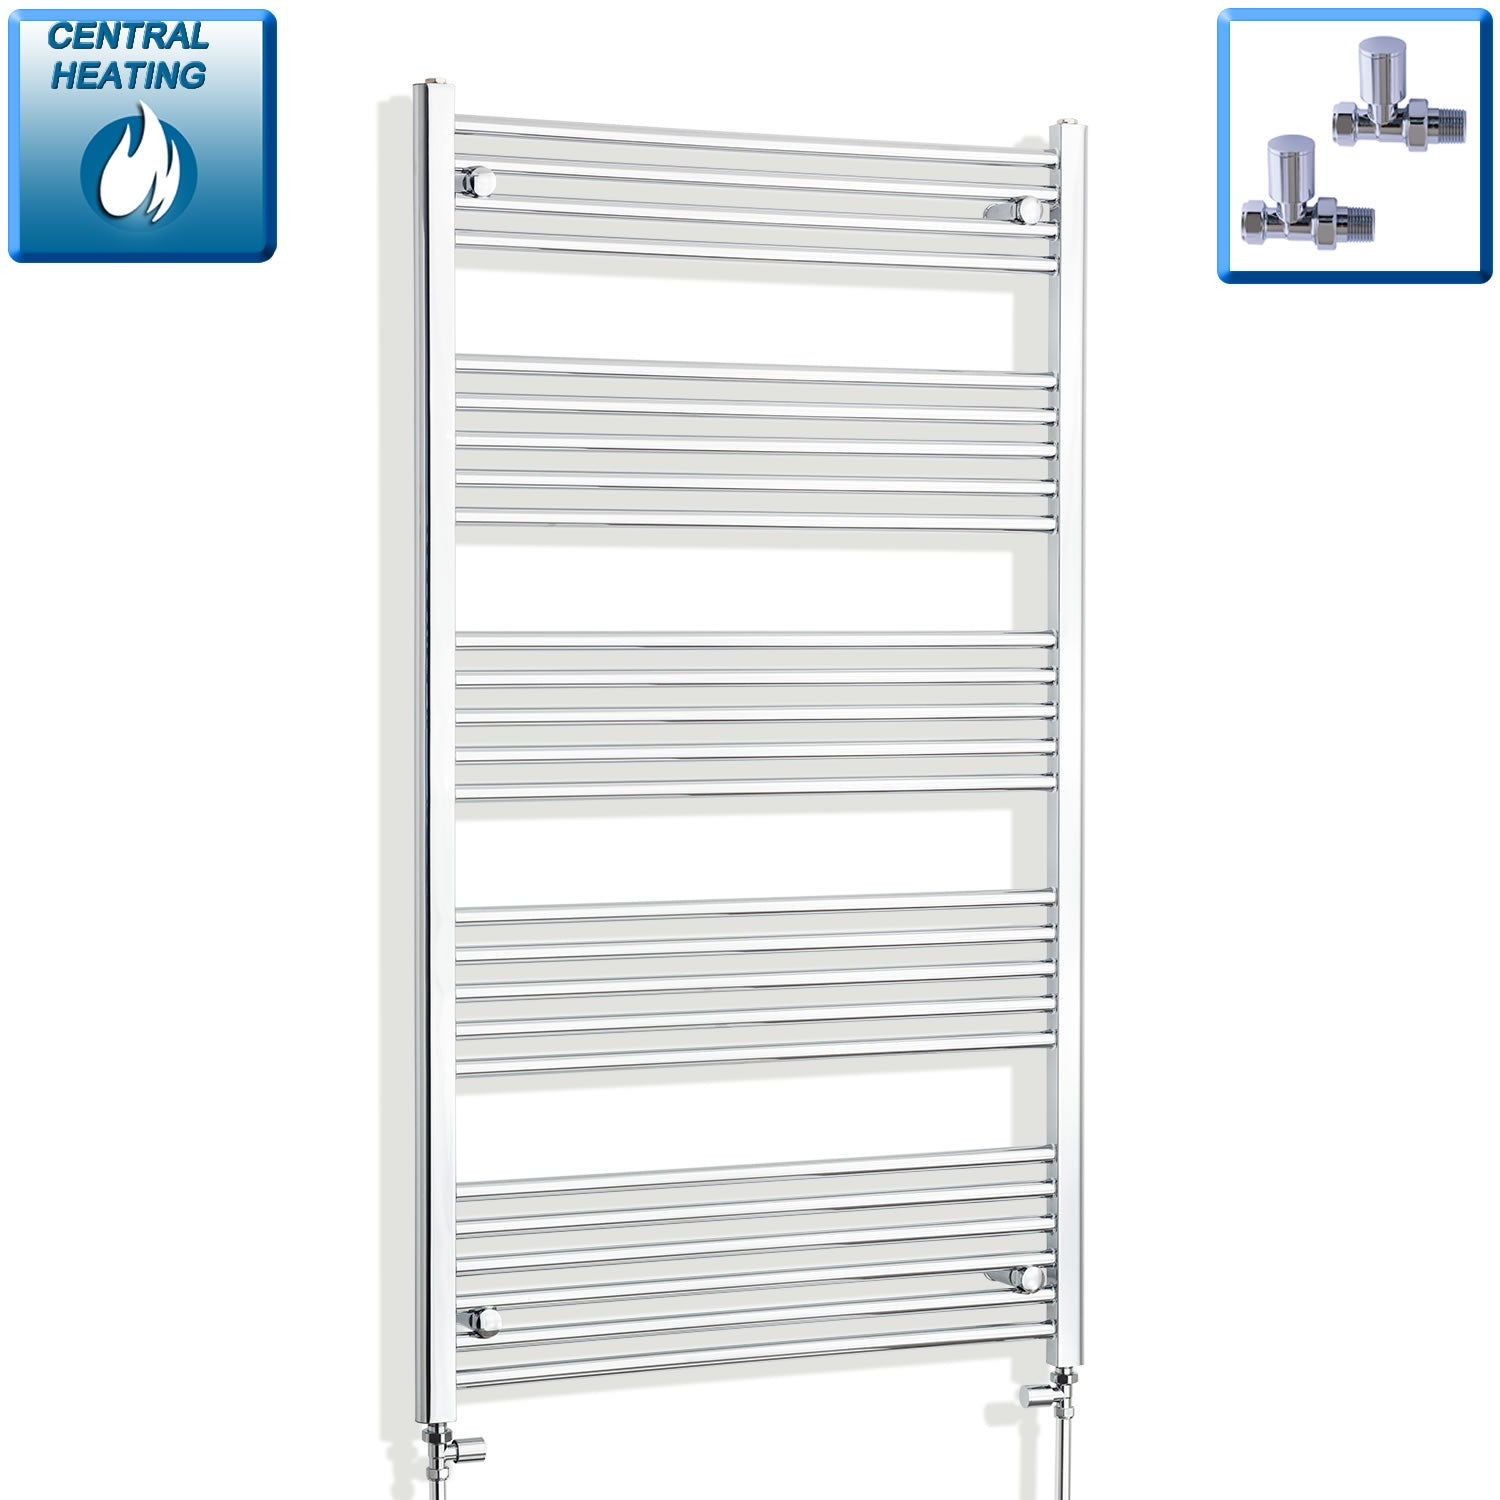 800mm Wide 1400mm High Chrome Towel Rail Radiator With Straight Valve